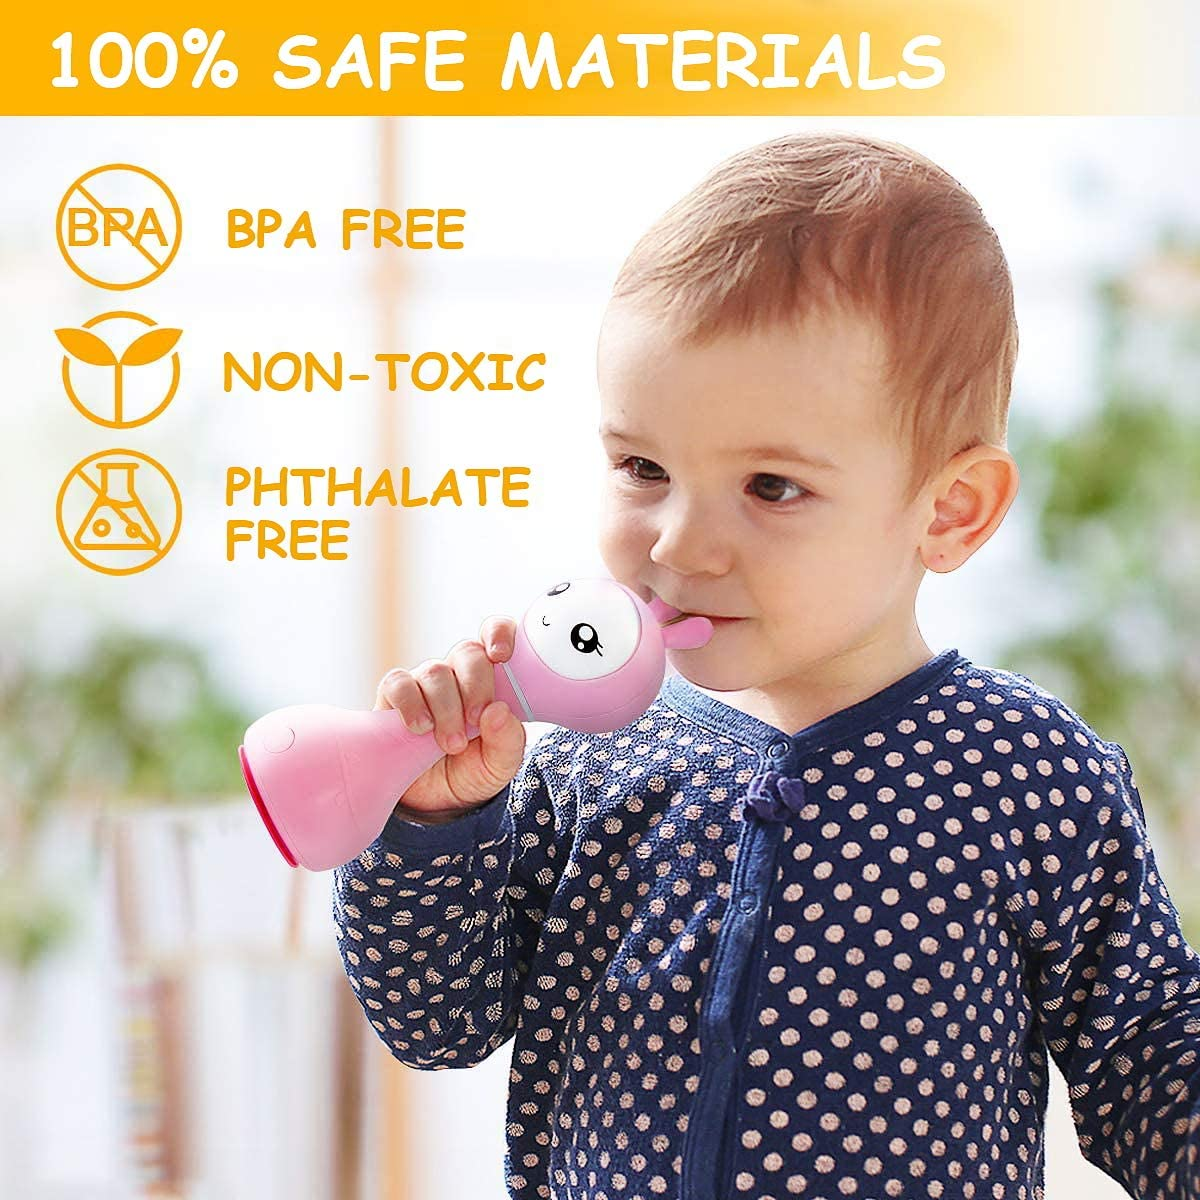 Alilo Bunny Baby Rattle Shaker and Teether Toys for 0-6-12 Months,Electronic Rattle Infants Toy,9 Kinds of Color Learning and Educational Toys with Music & Light, Gift for Newborns Girls Boys Toddlers